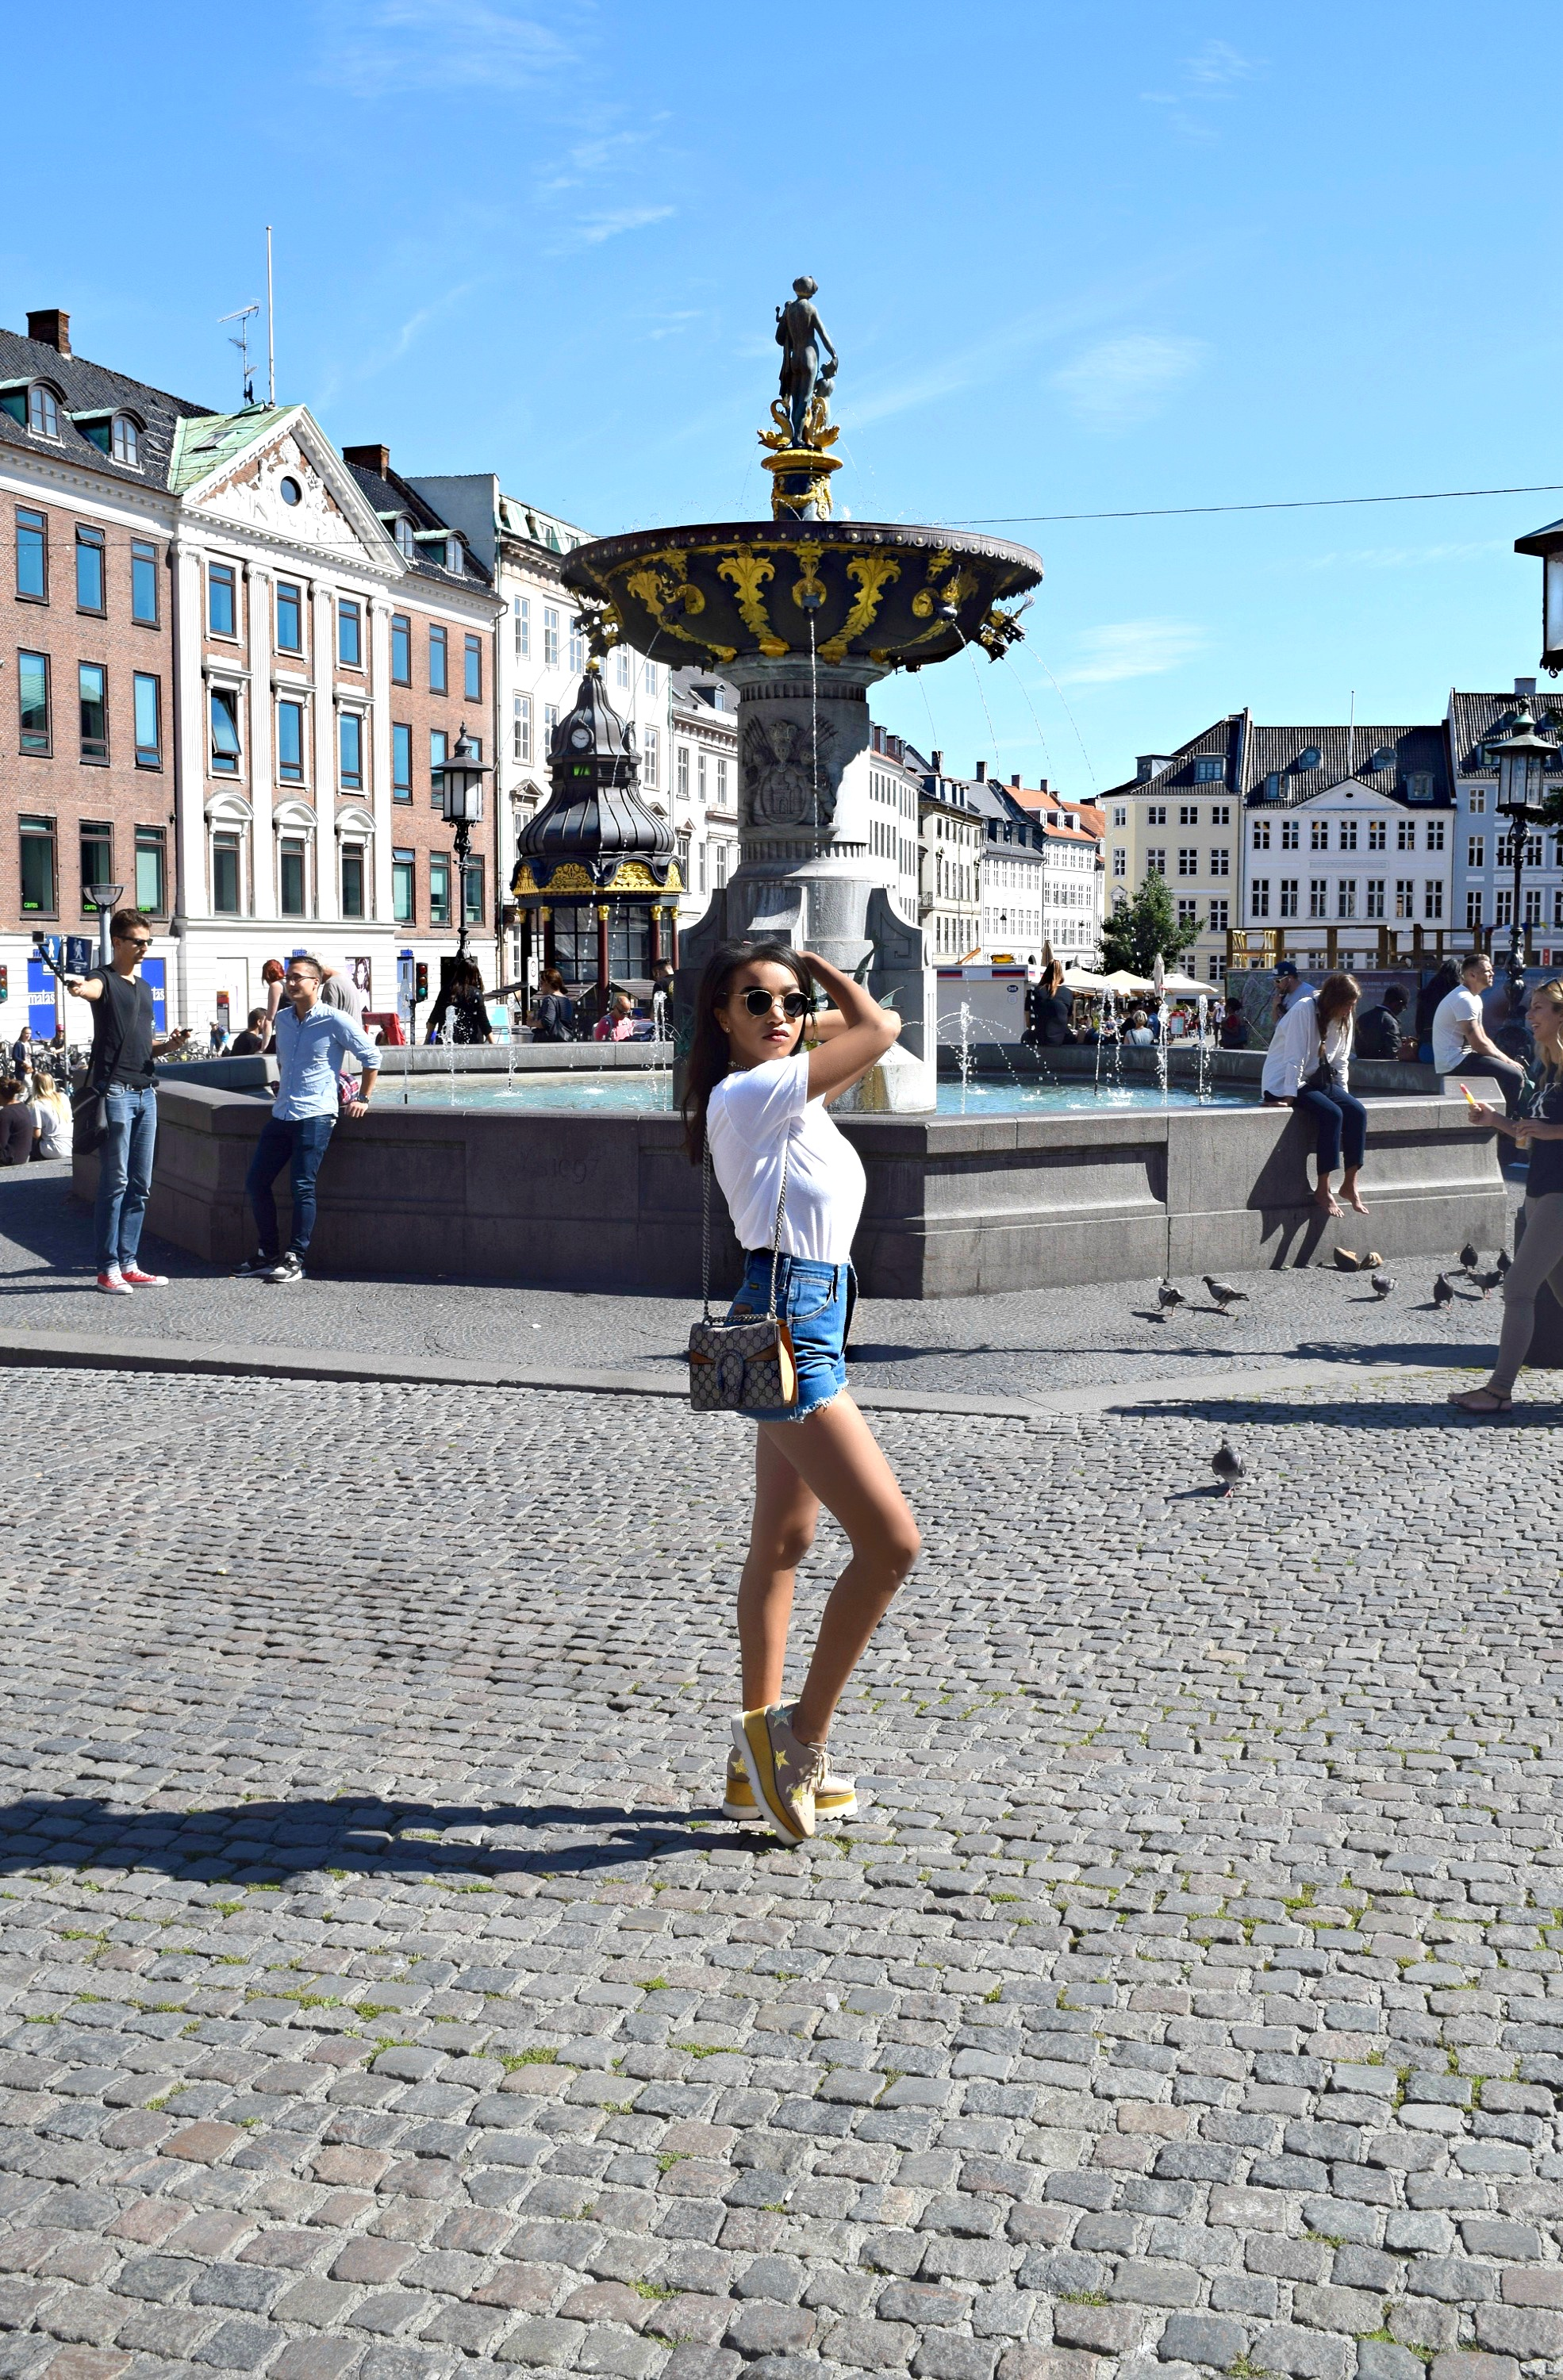 The End Of Summer In The City // Copenhagen, Denmark Travel Guide // Zara Blazer // Stella McCartney Platforms // Gucci Dionysus Bag // Saint Laurent Tshirt // Los Angeles Fashion Blogger Daphne Blunt: To Style, With Love